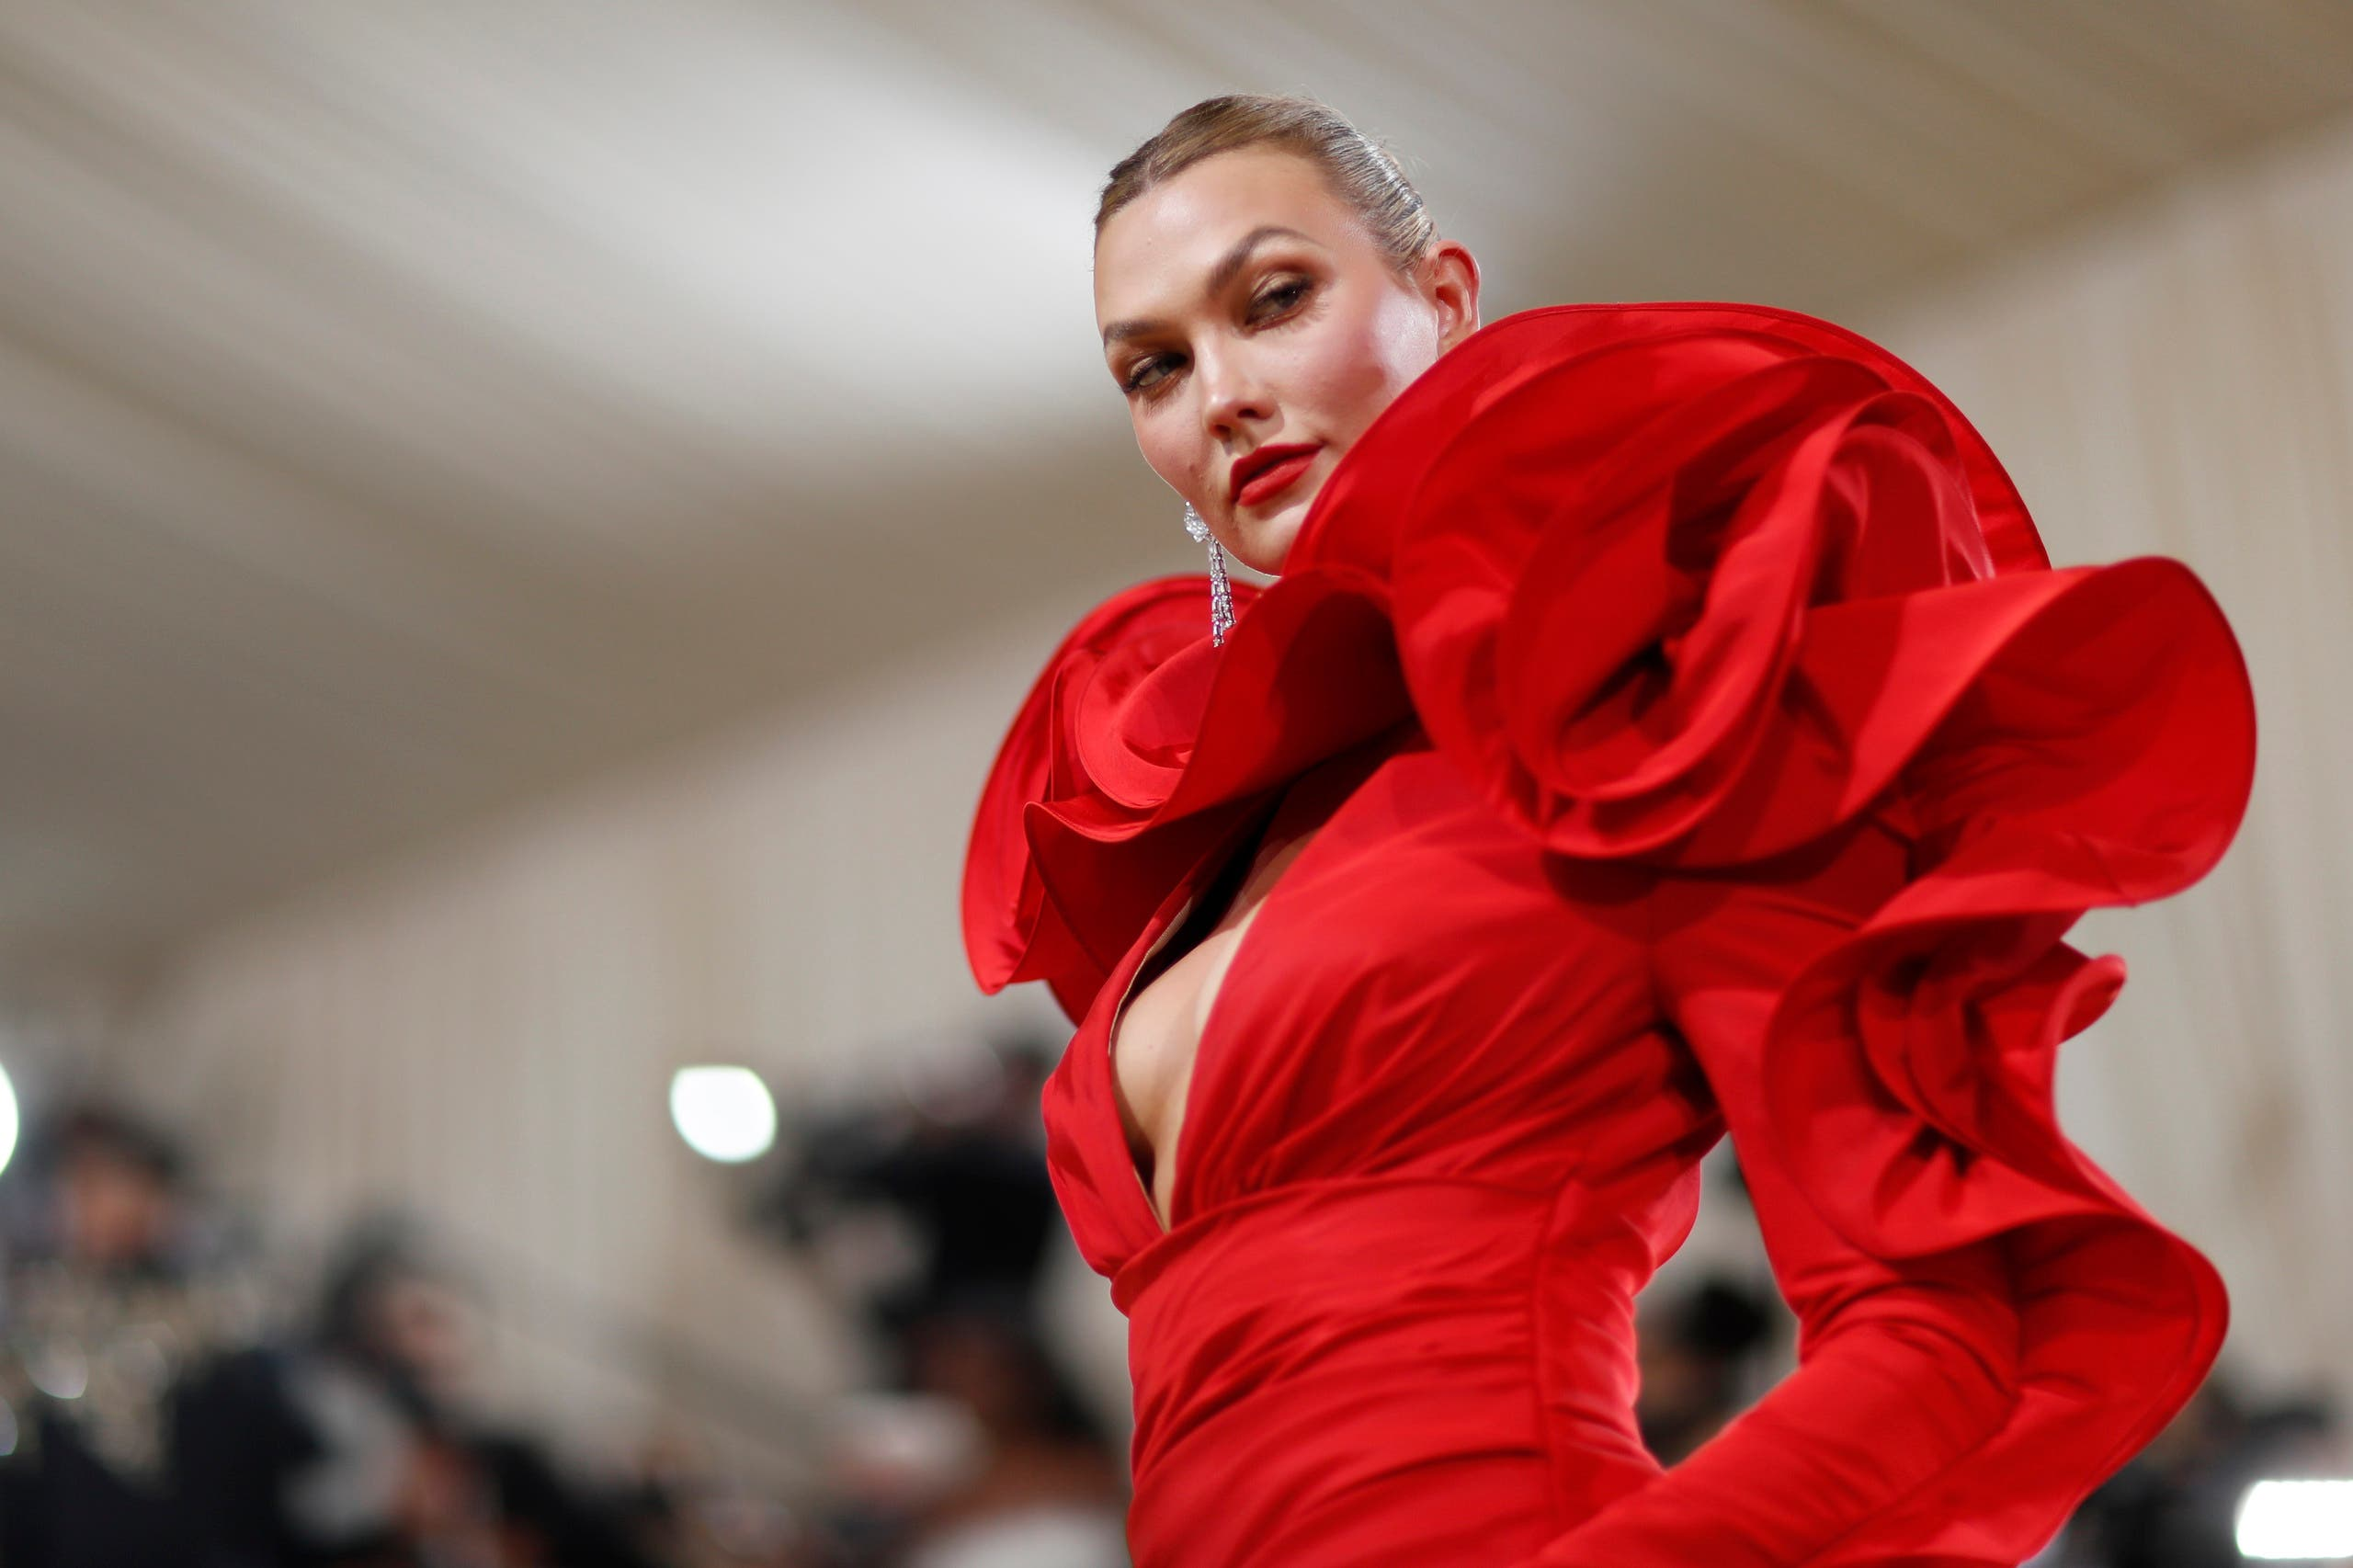 Metropolitan Museum of Art Costume Institute Gala - Met Gala - In America: A Lexicon of Fashion - Arrivals - New York City, US - September 13, 2021. Karlie Kloss. (Reuters)